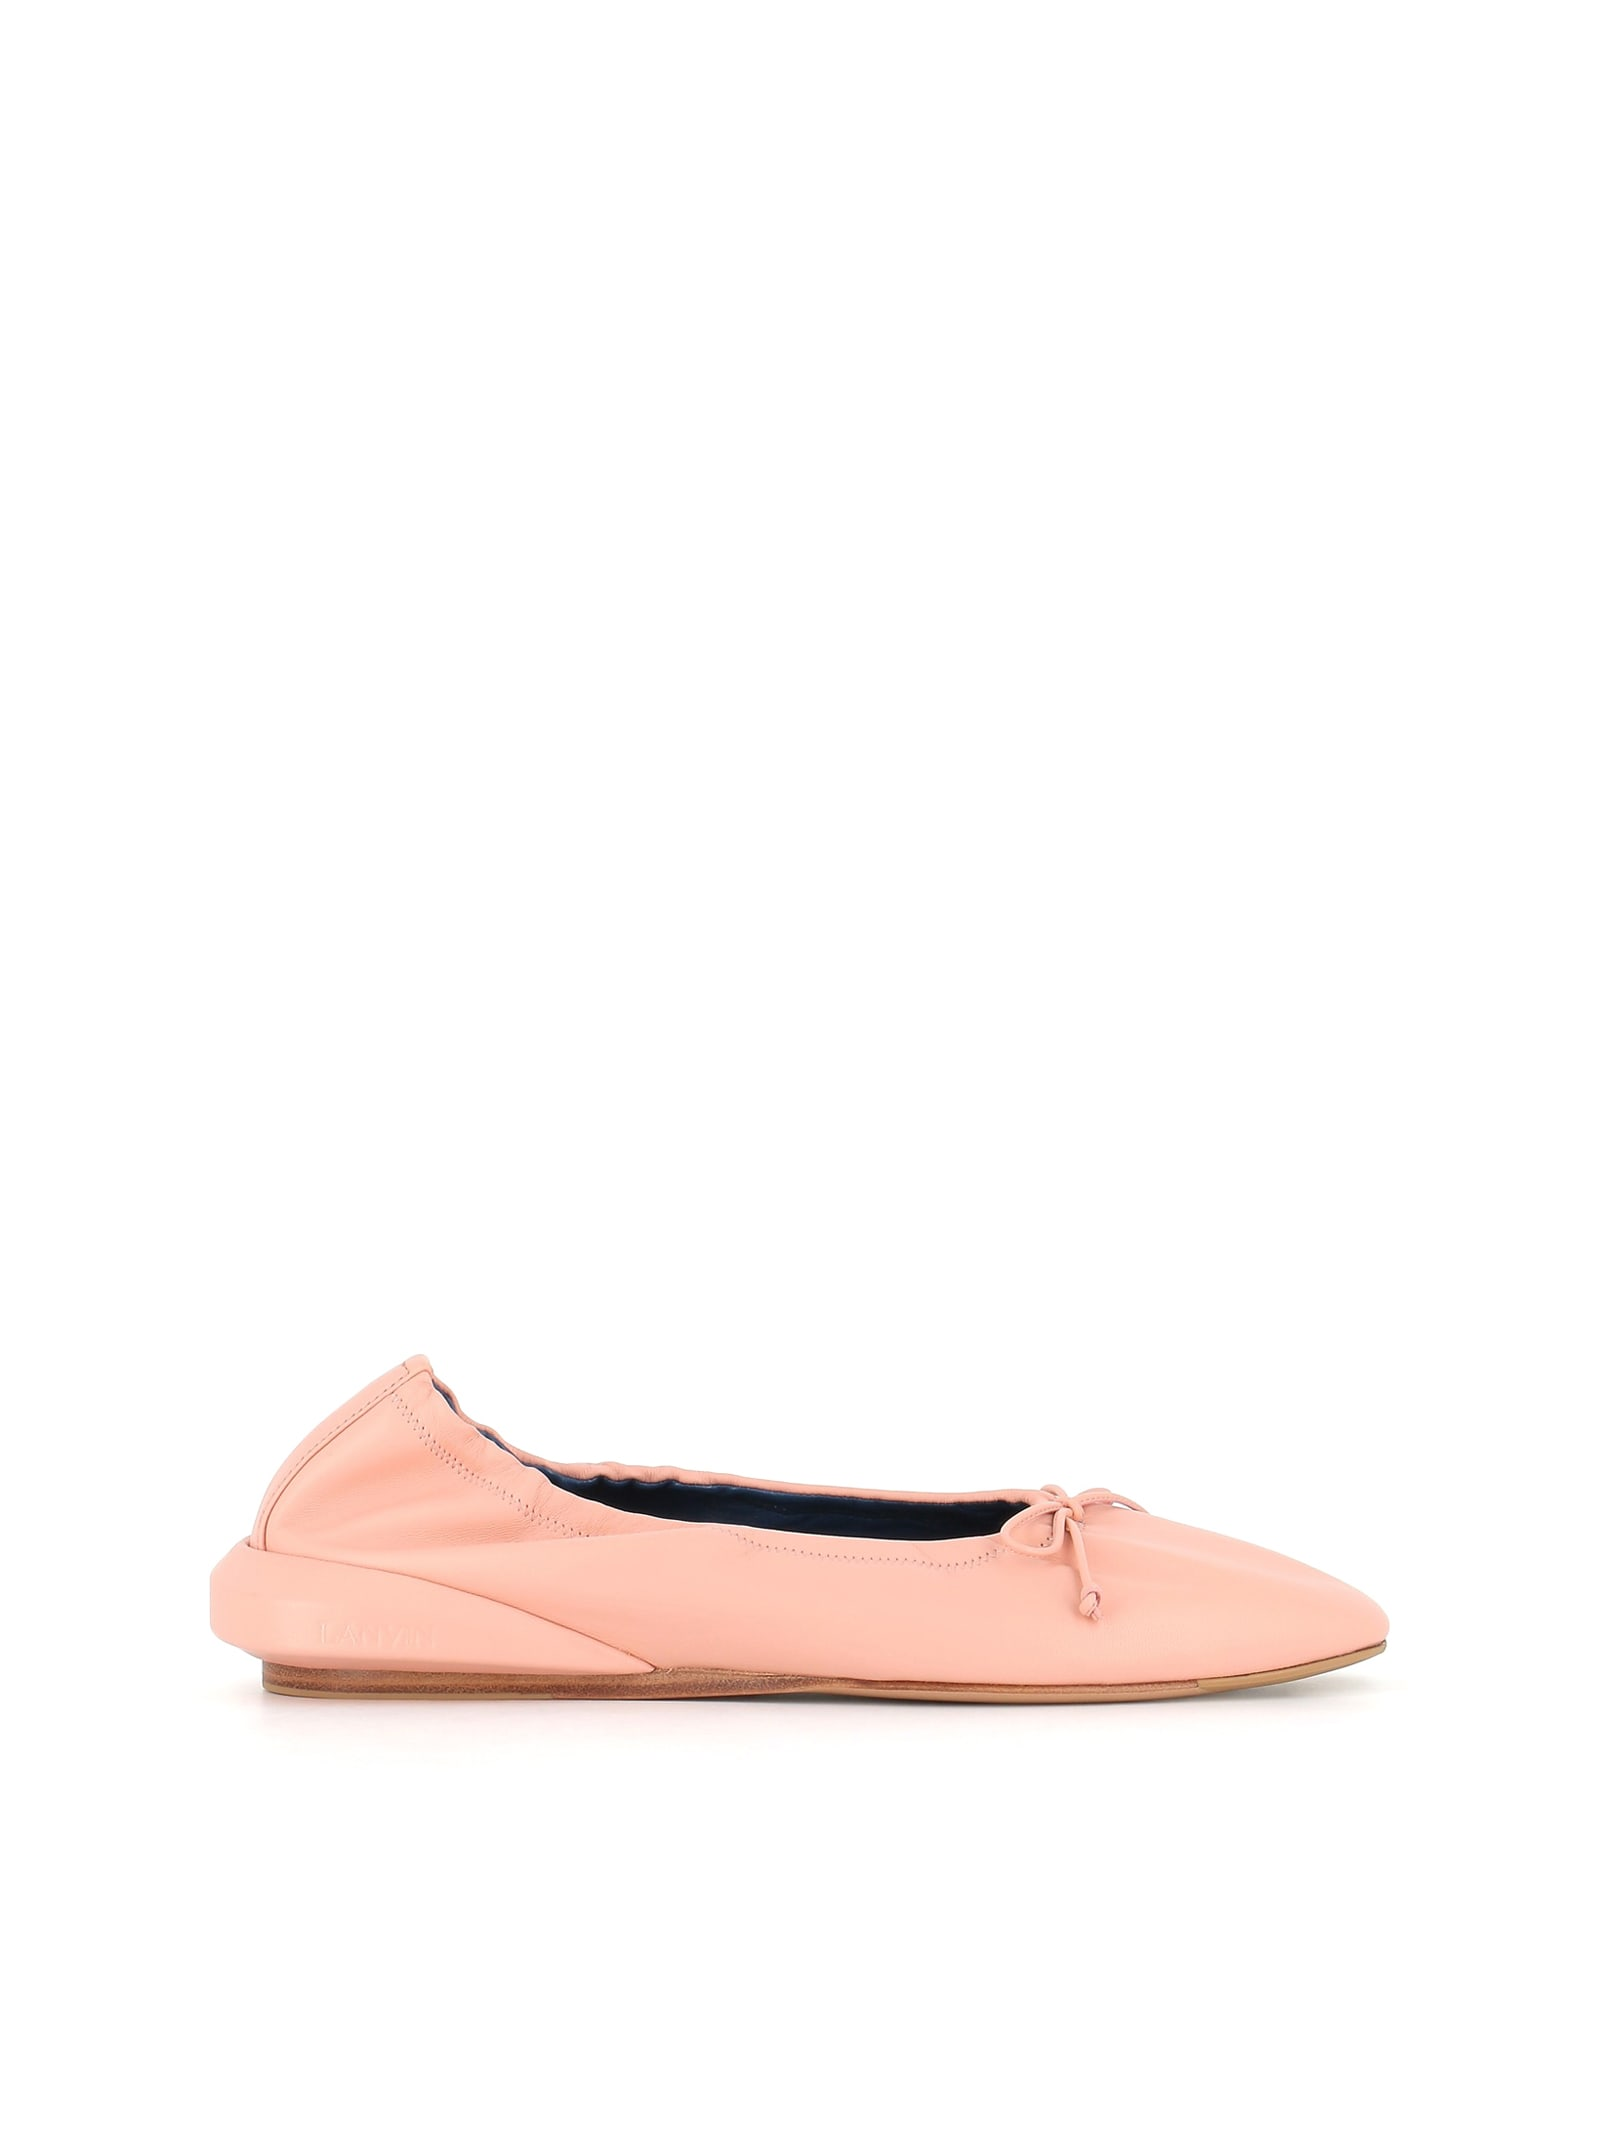 Buy Lanvin Ballerina Bumpr online, shop Lanvin shoes with free shipping